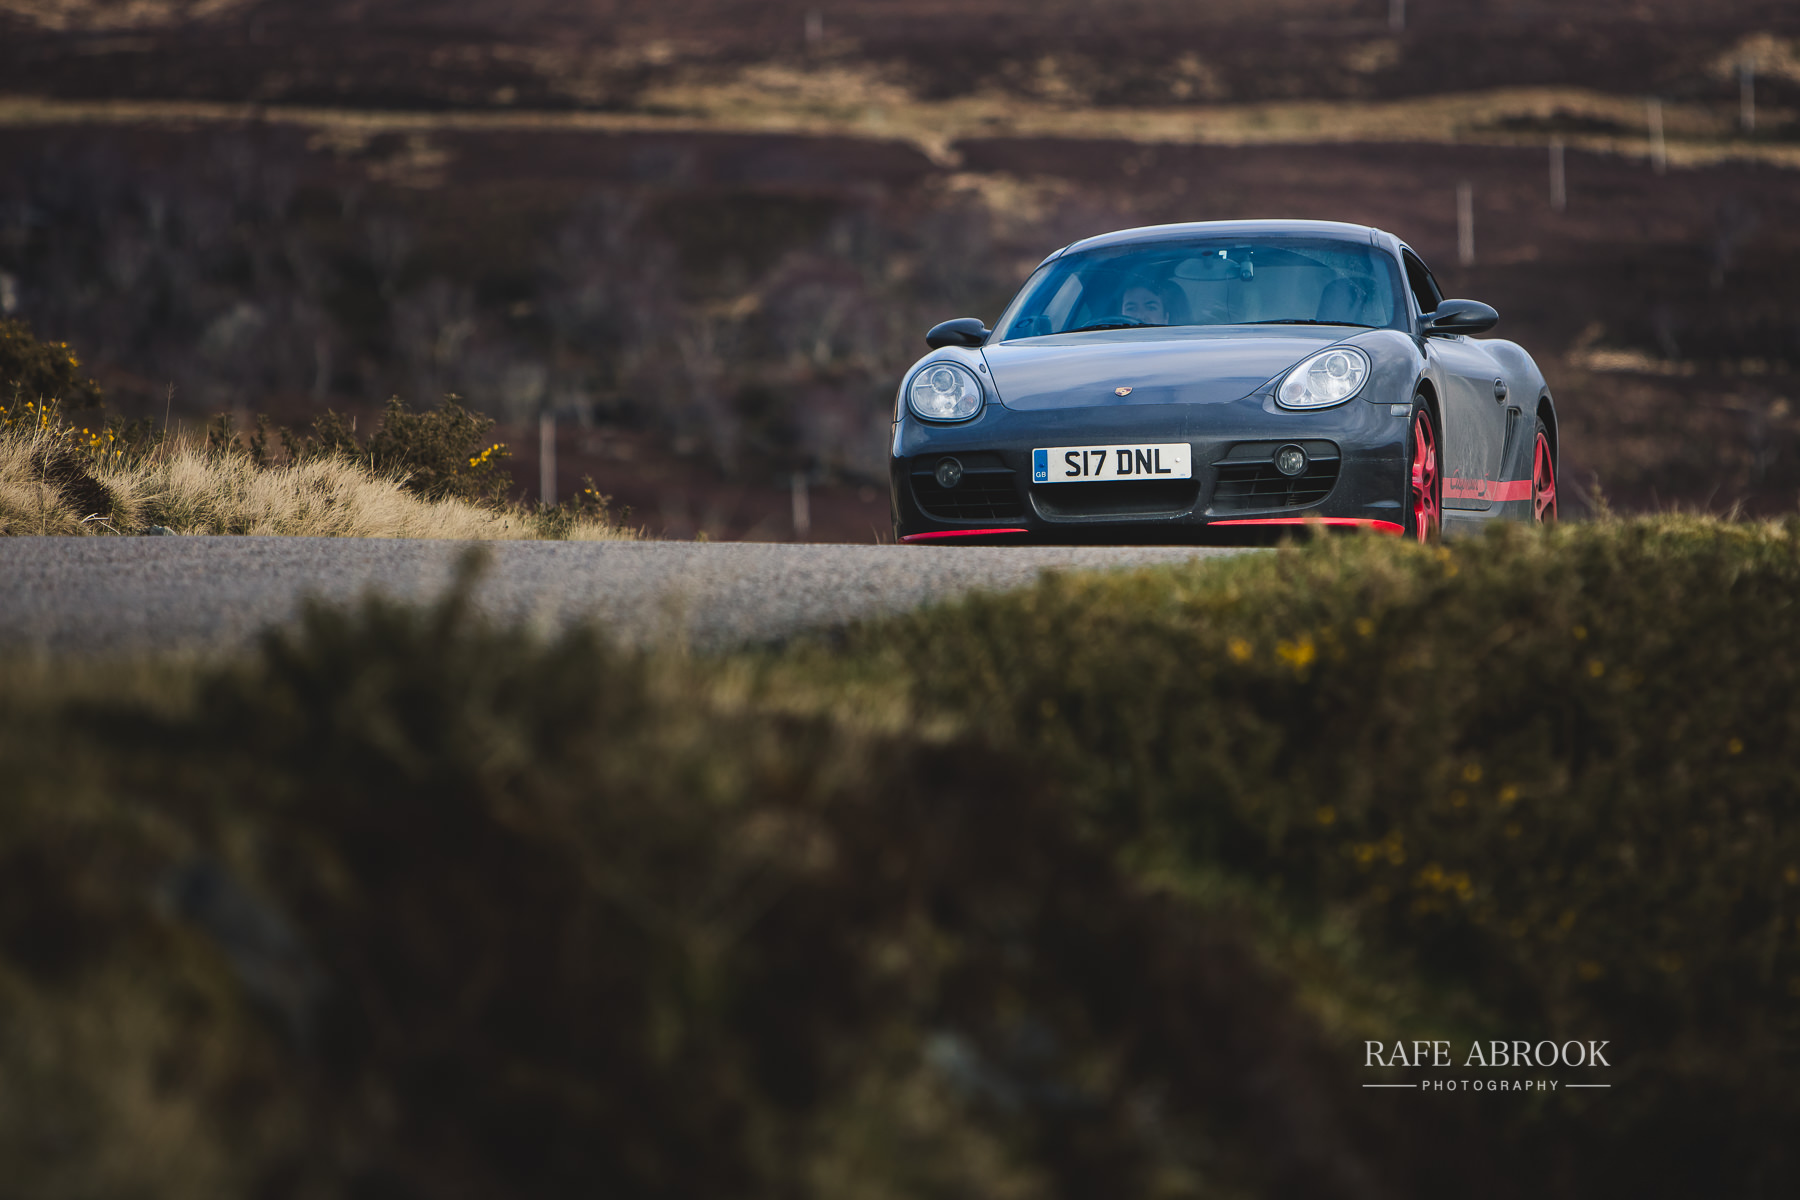 north coast 500 scotland porsche cayman gt4 golf r estate rafe abrook photography-1261.jpg